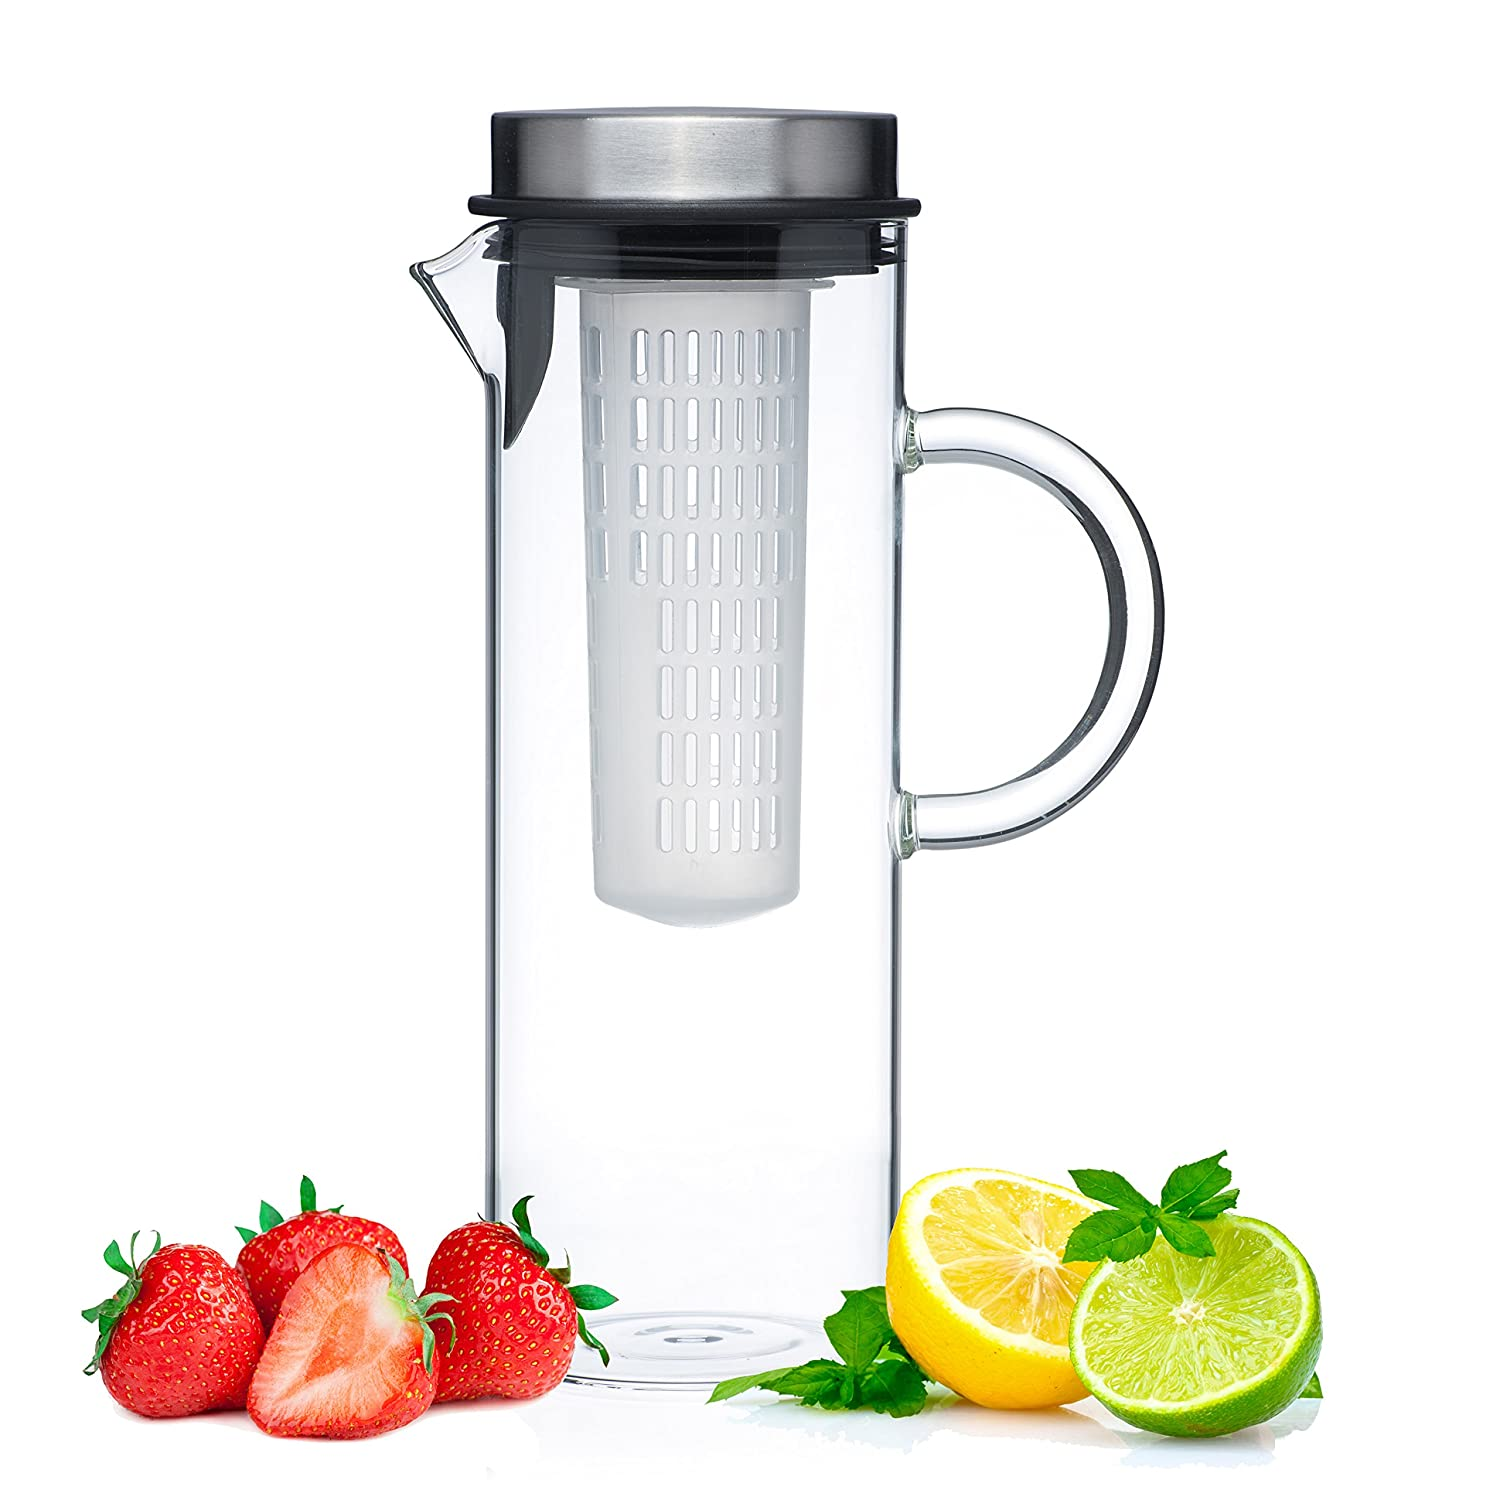 Glass Pitcher W/ Lid & Infuser Borosilicate Glass Carafe W/ Up To 50Oz/1500ml Capacity | Stainless Steel Lid, BPA-FREE Infusion Rod | Perfect For Water, Tea, Sangria, Juice by Kitchen De Lujo sewing machine